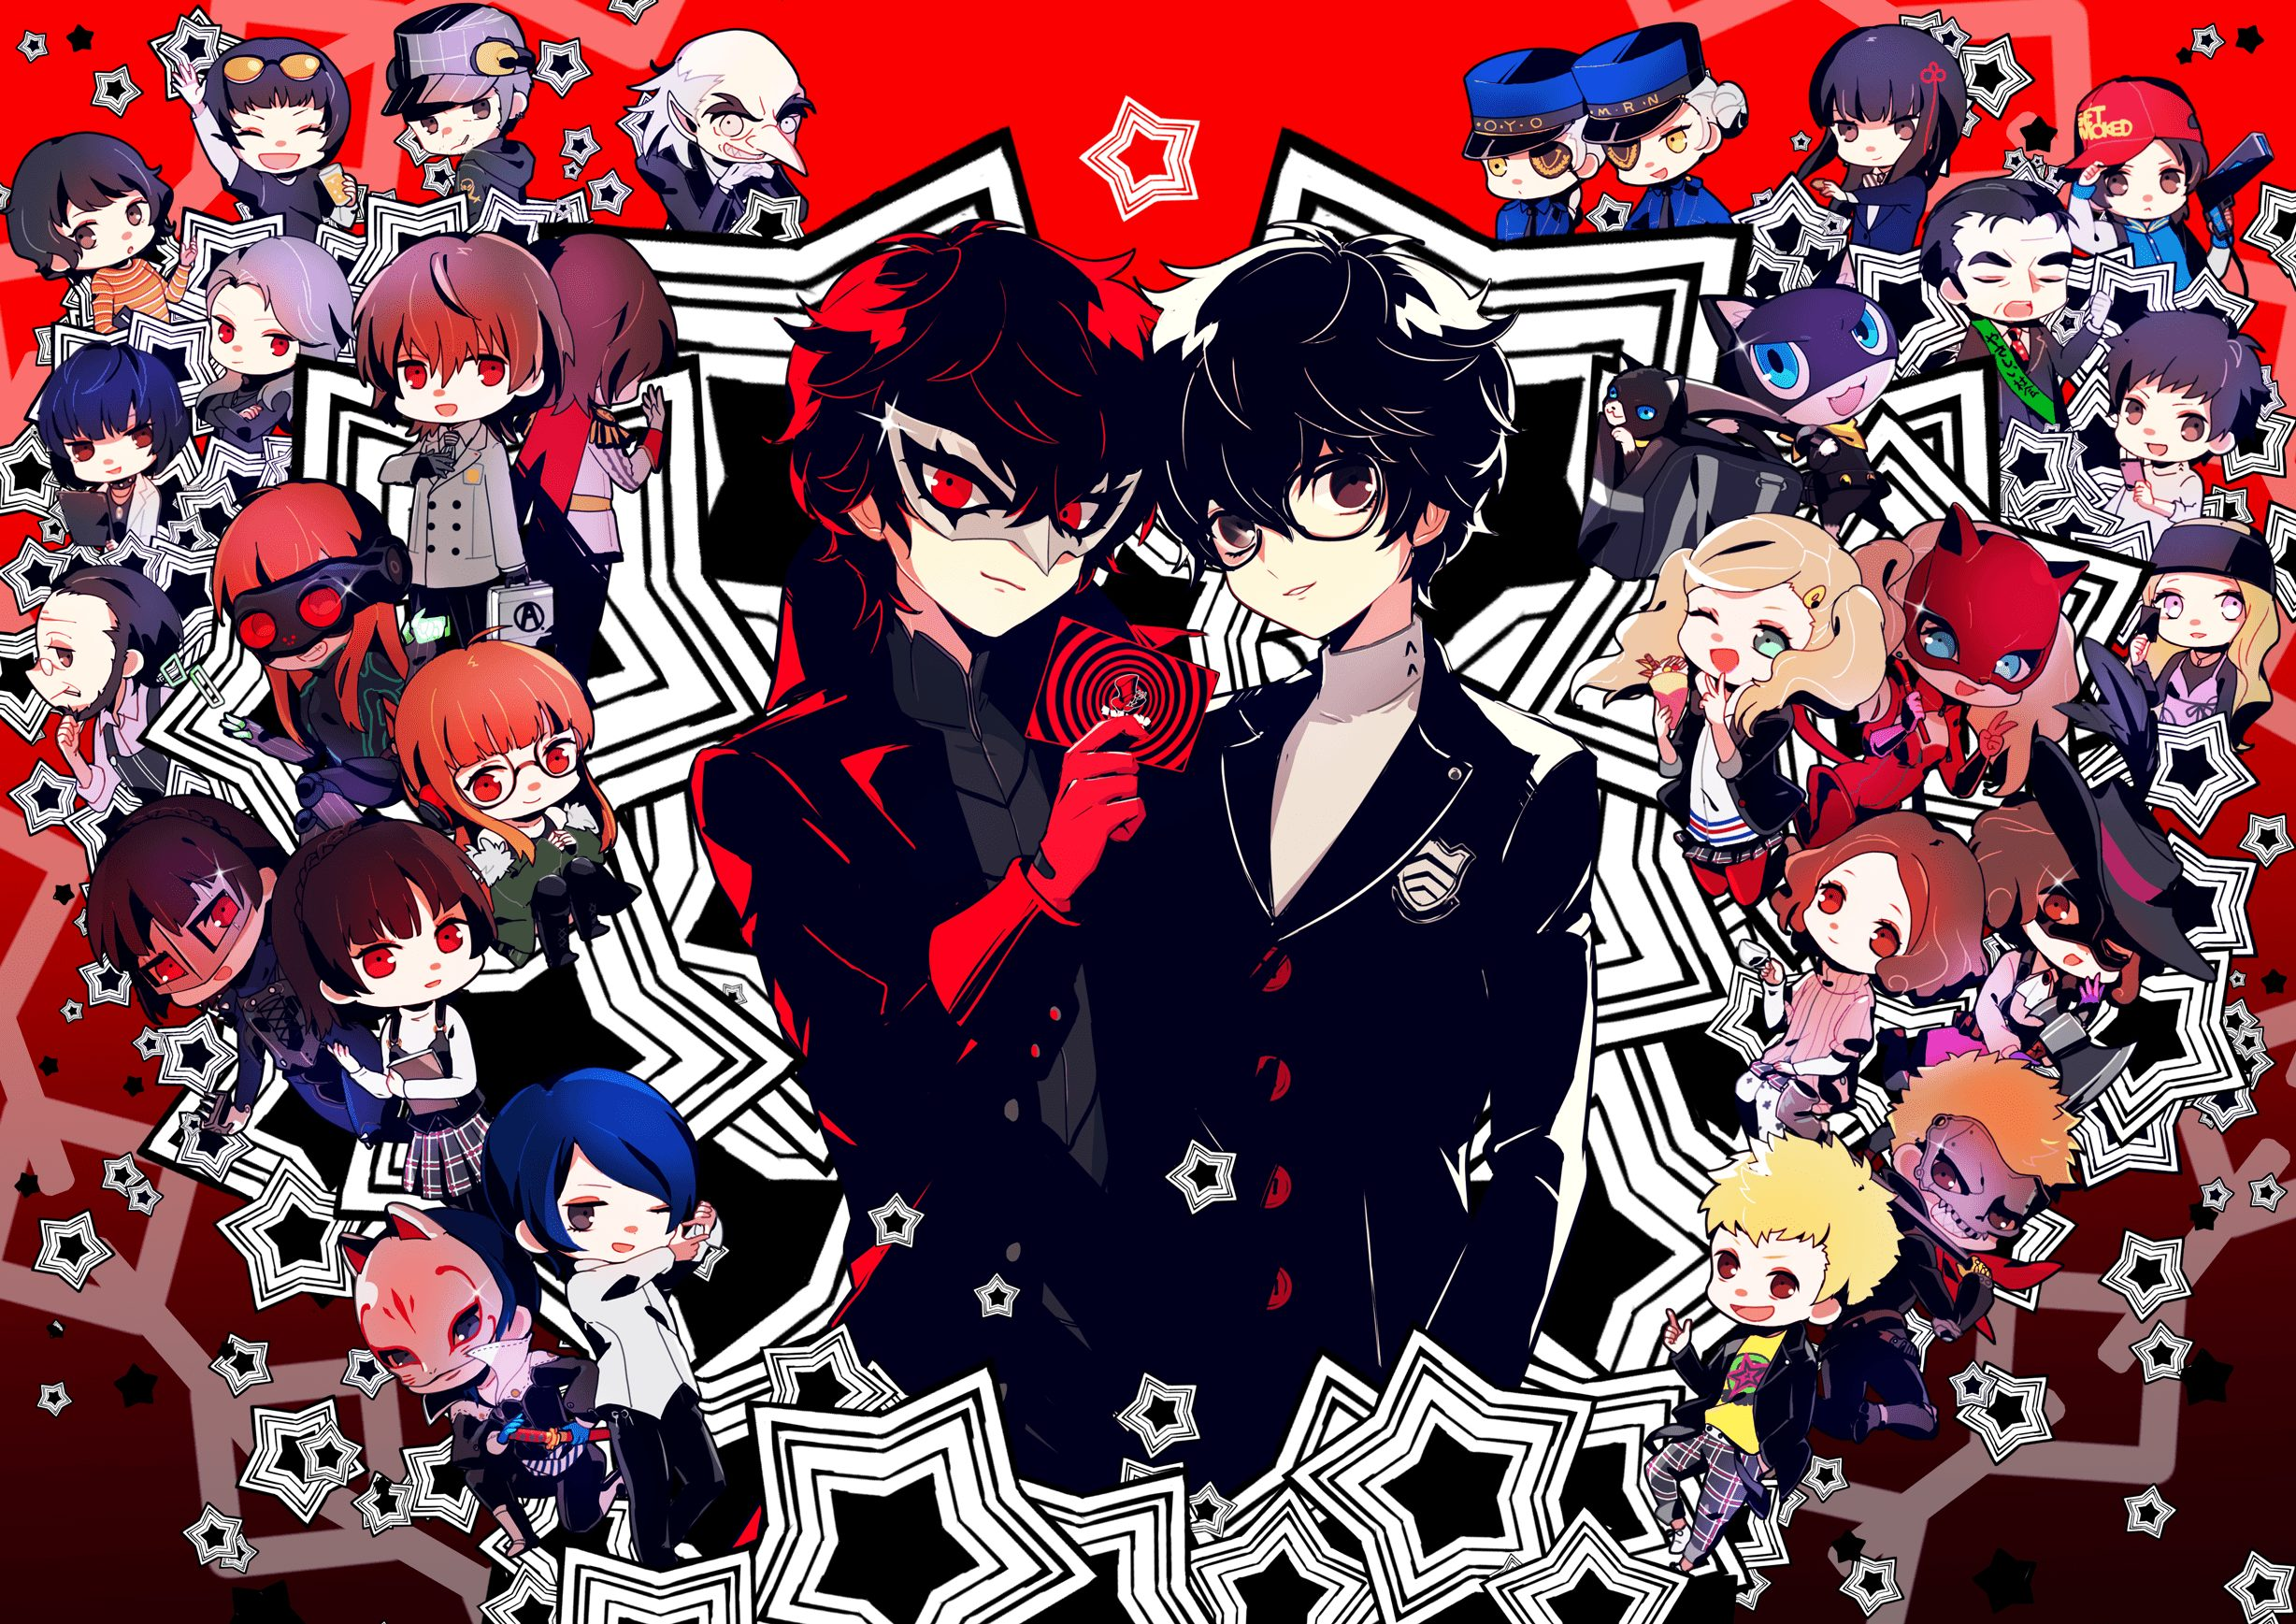 4K & HD Persona 5 Wallpapers You Need to Make Your Desktop ...